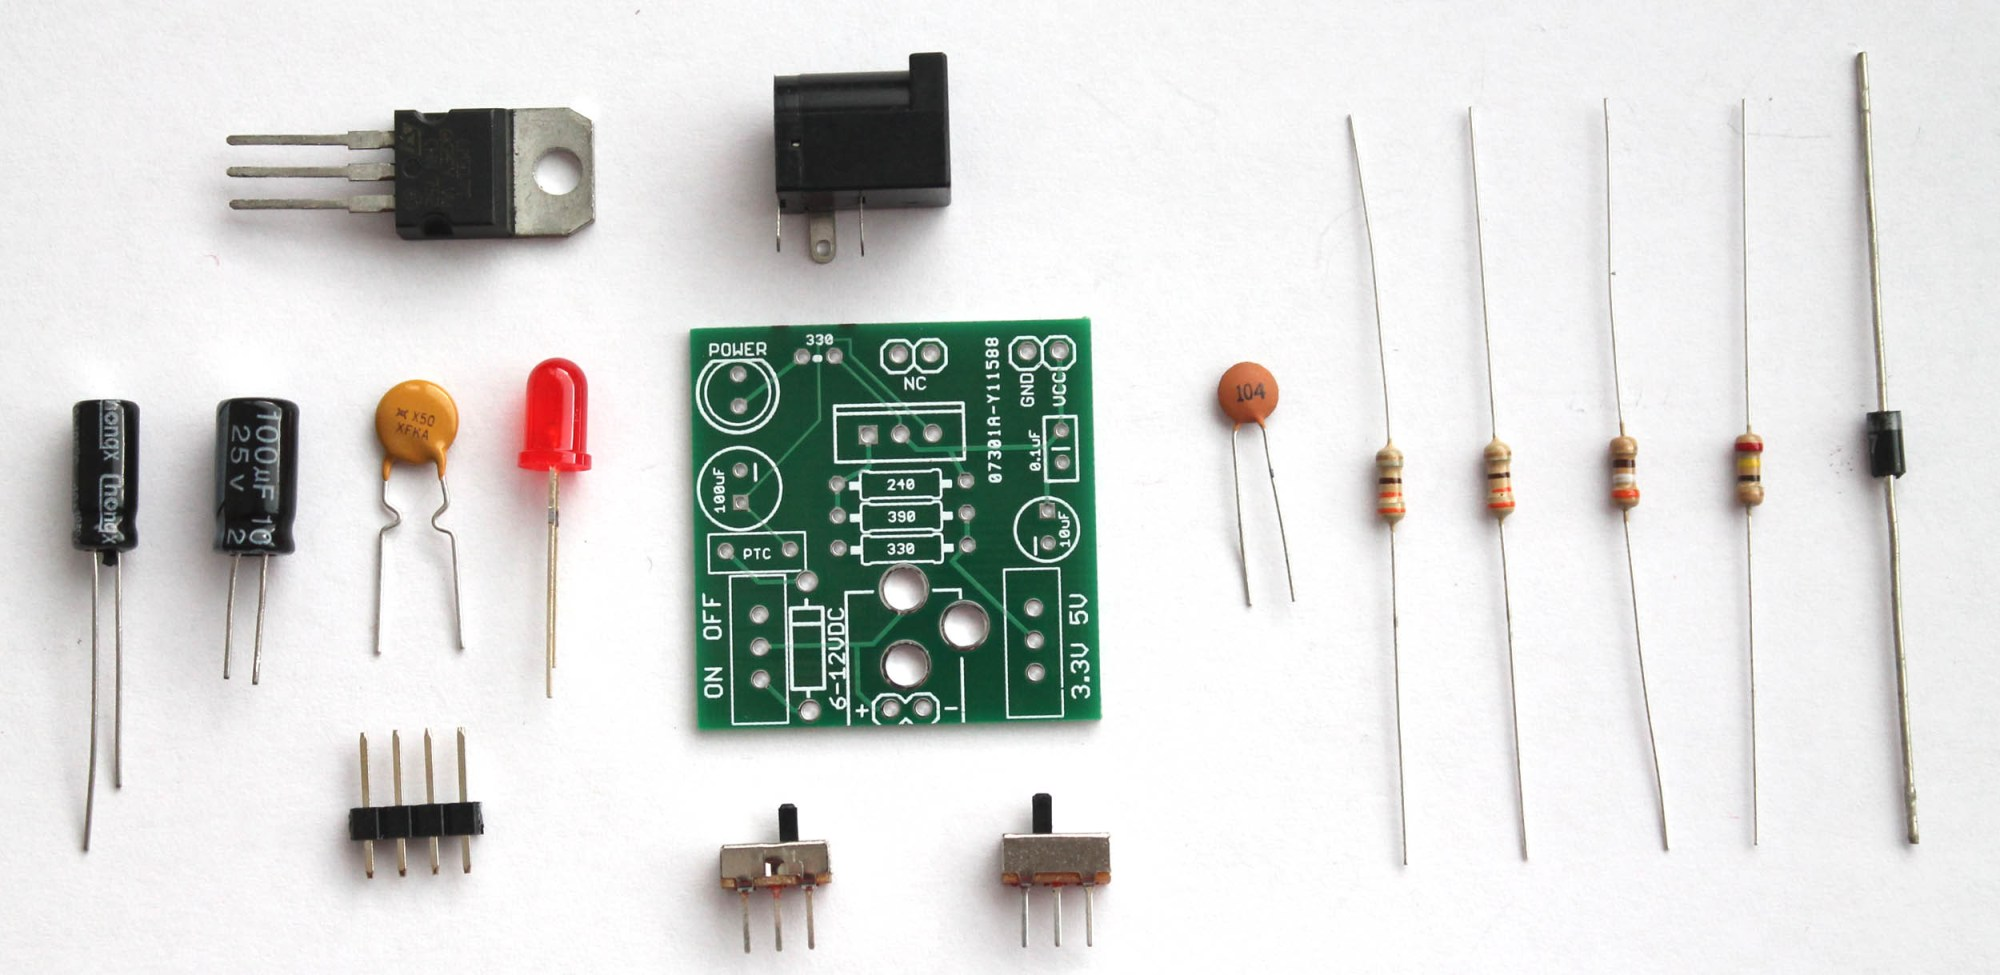 hight resolution of buildcircuit s breadboard power supply diy kit